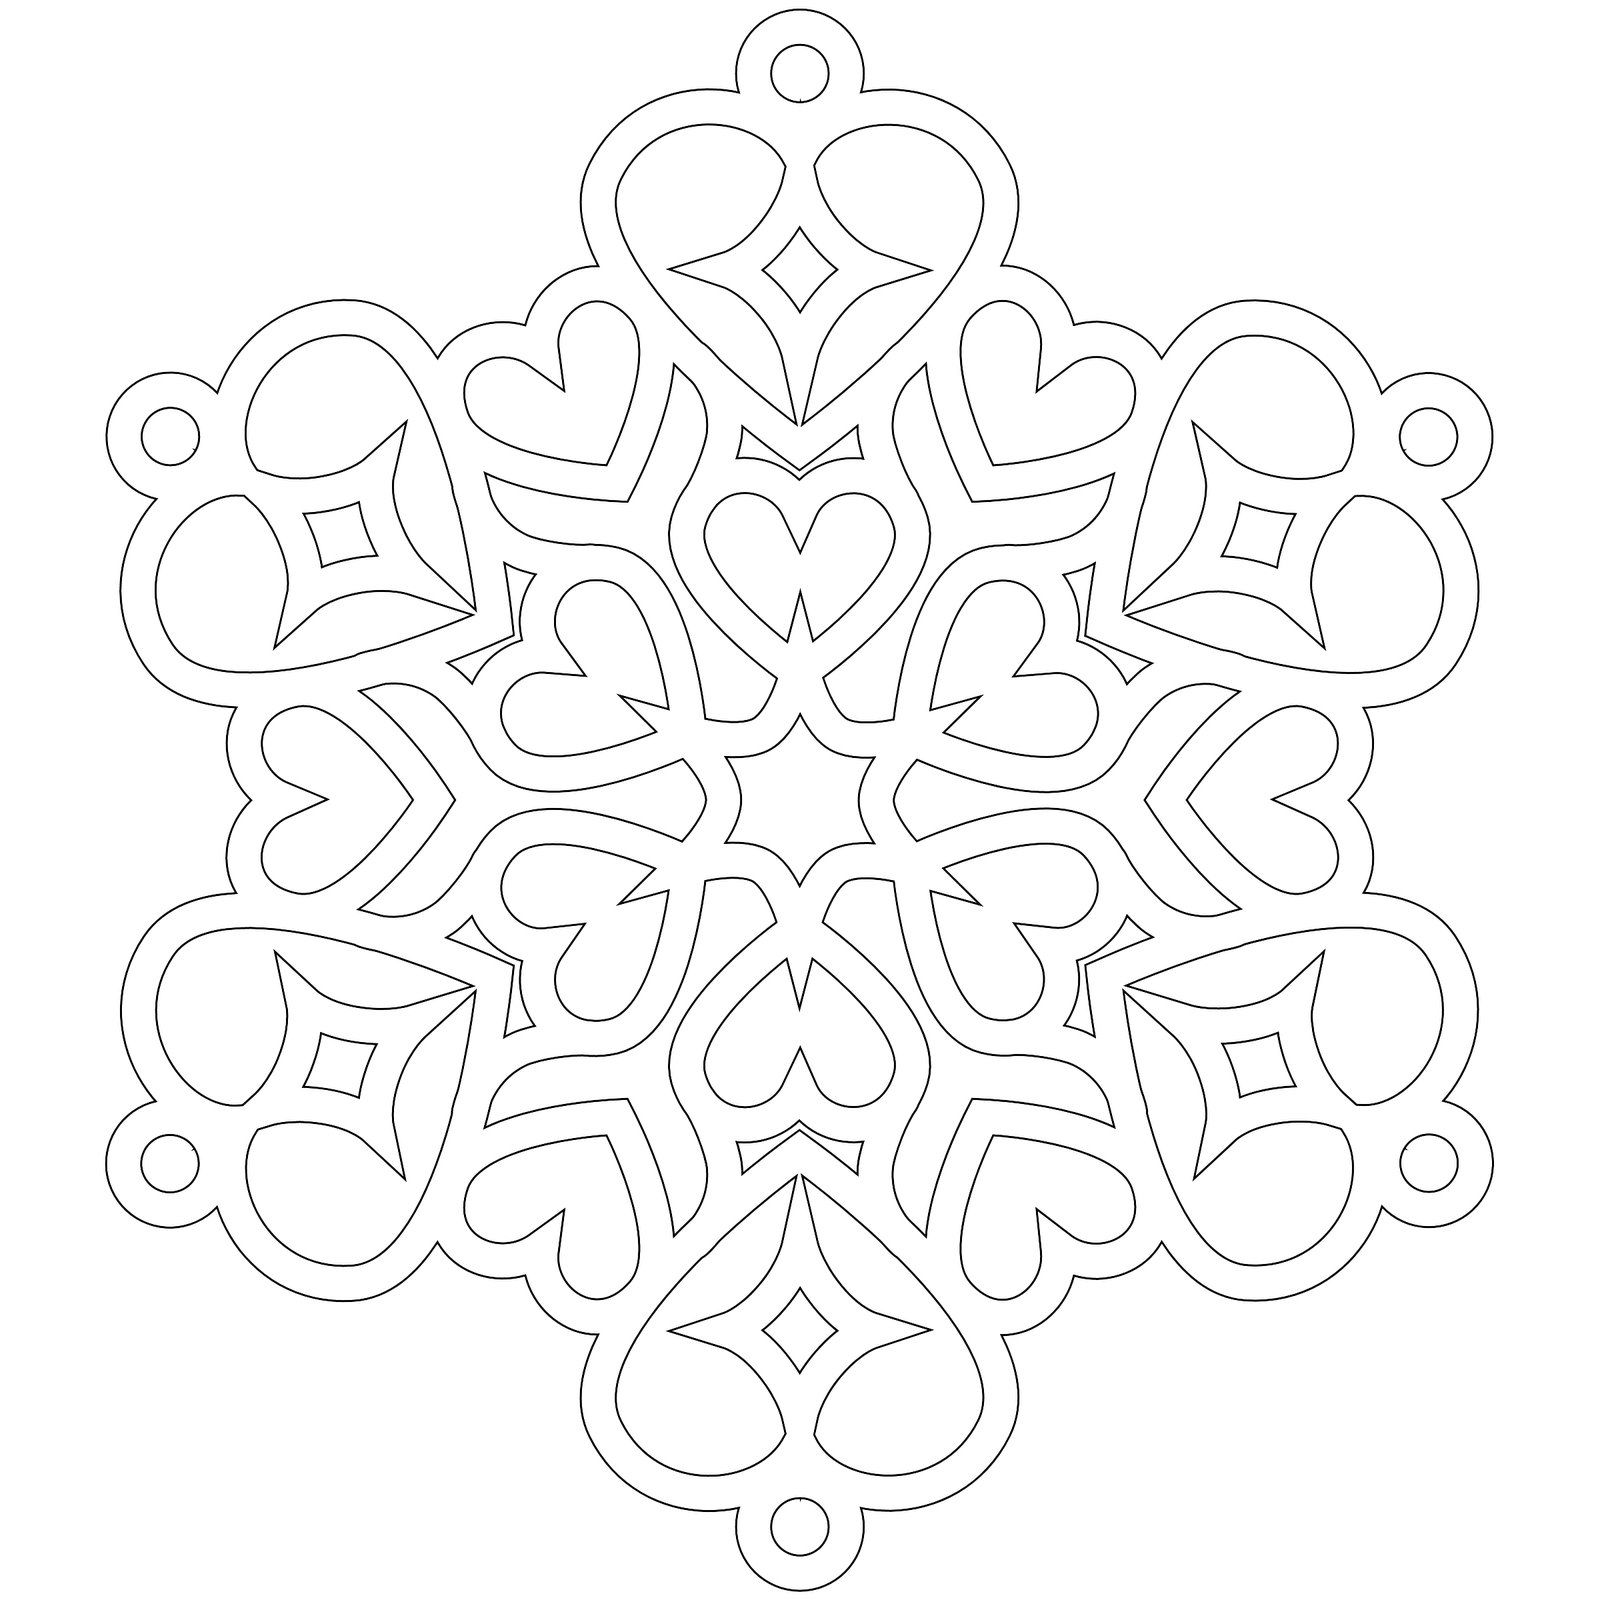 summer-design-coloring-pages-best-coloring-page-site.jpg (1600×1600)